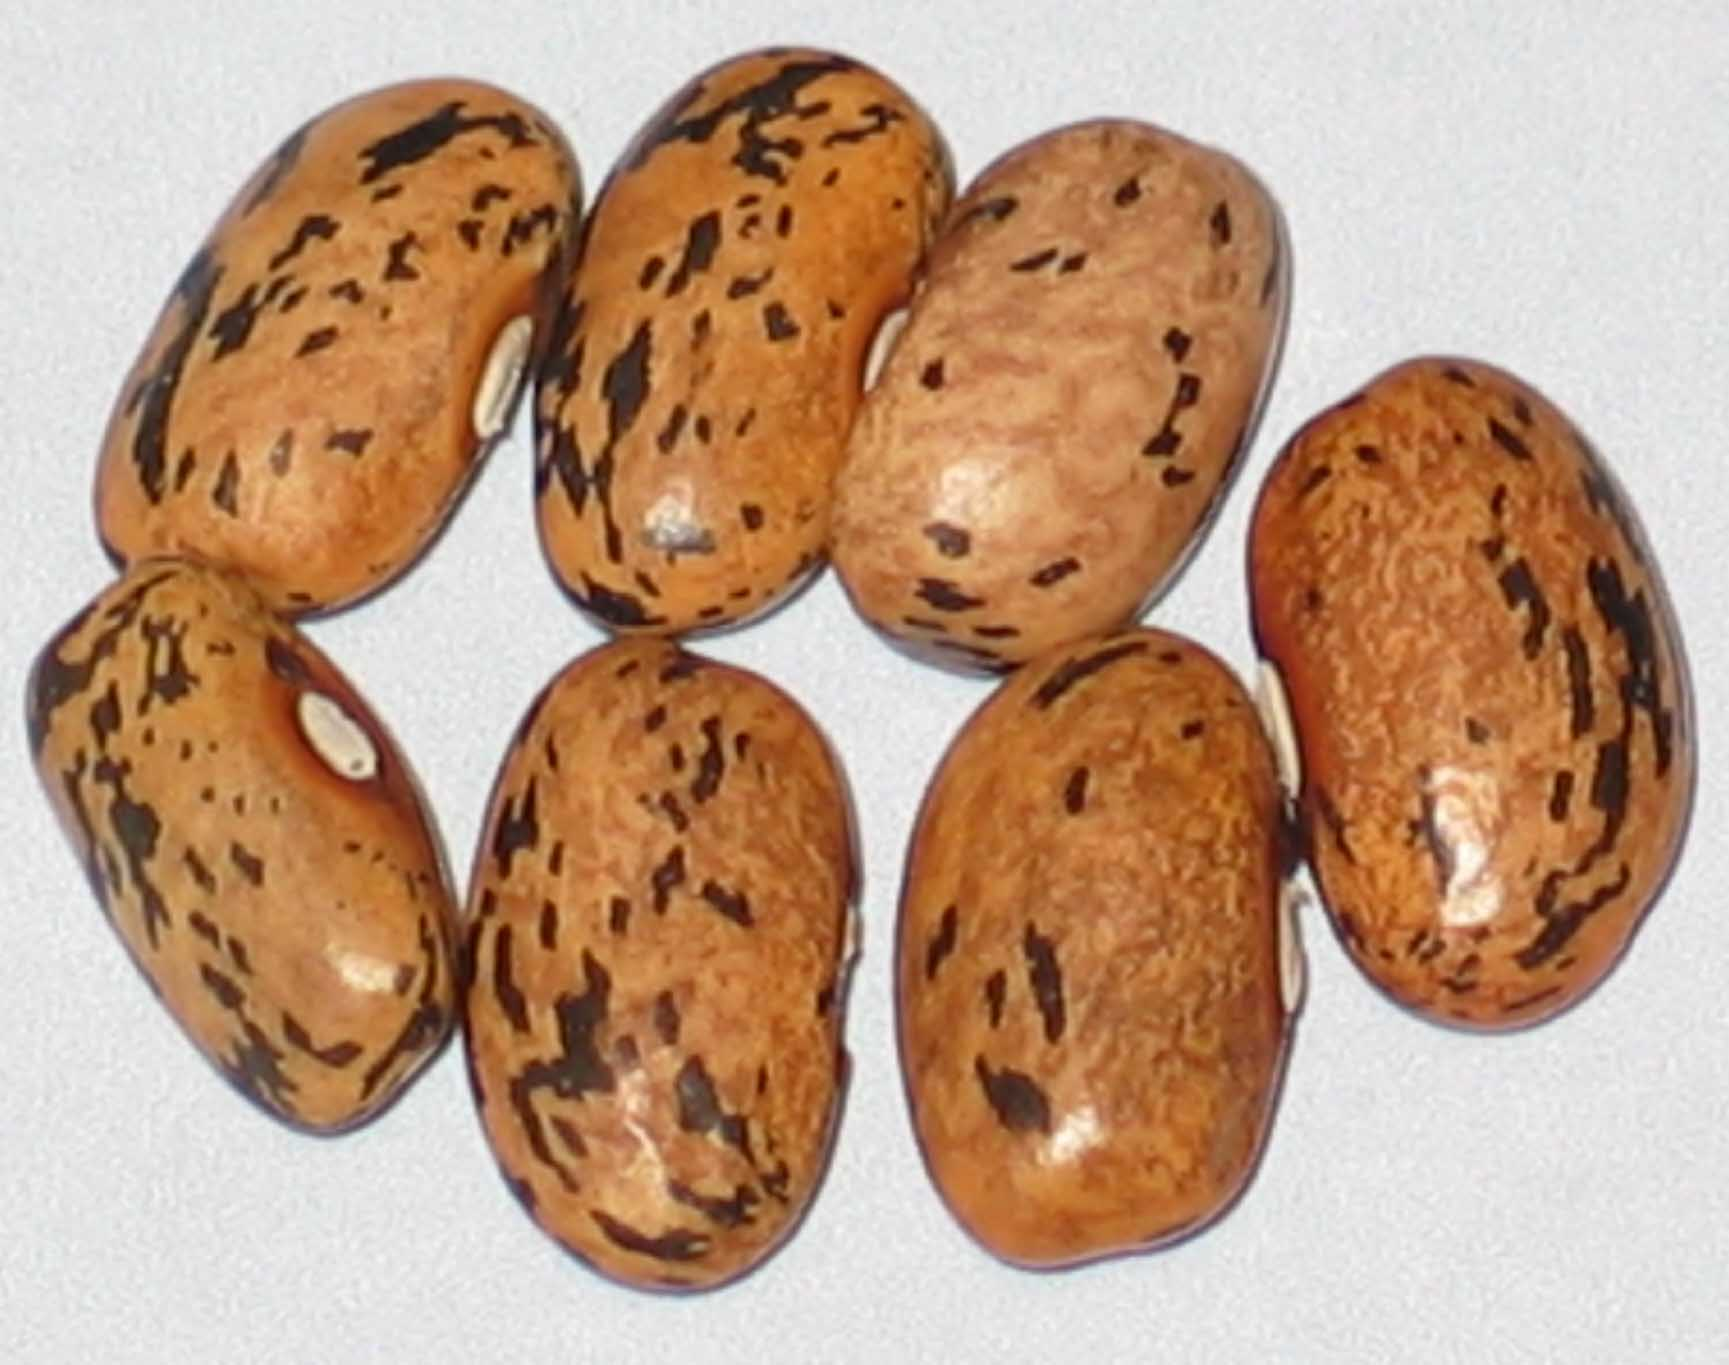 image of Blue Bloom beans